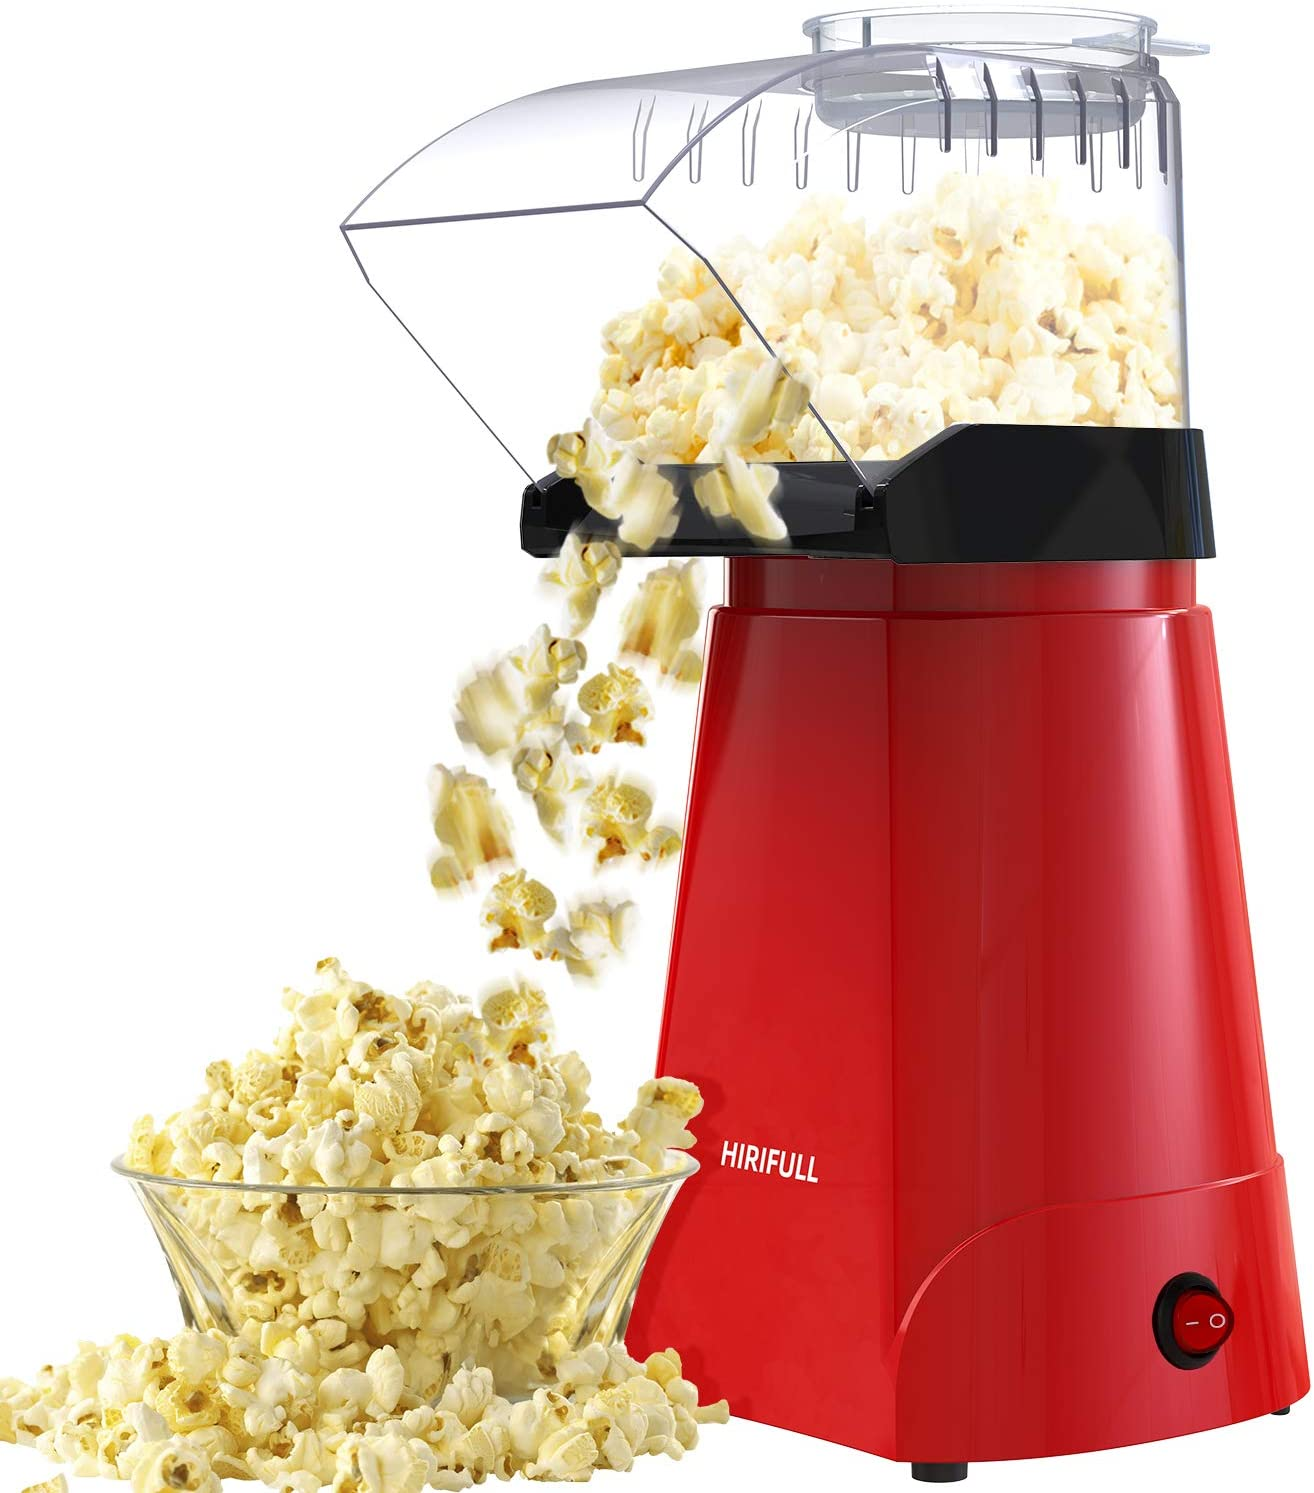 white AKlamater Electric Hot Air Popcorn Machine Healthy Home Popcorn Home Made Treats For Healthy Less Fat Popcorn 1200w